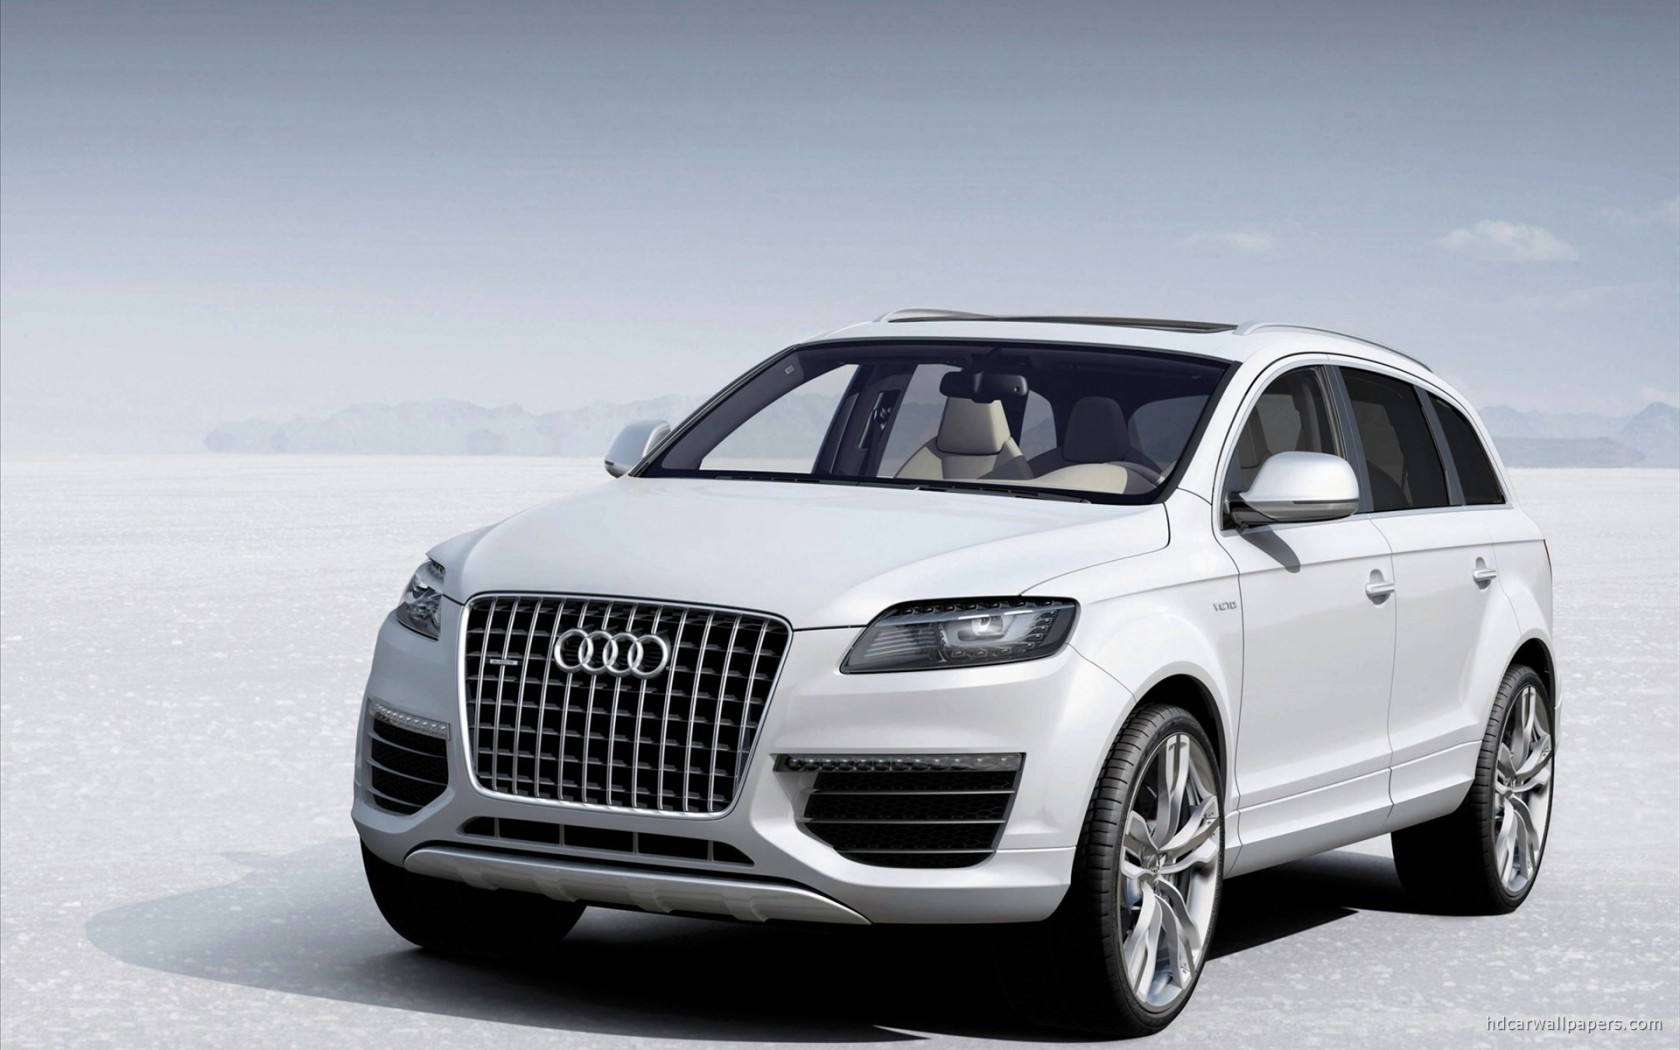 2012 Audi Q7 V12 Wallpaper | HD Car Wallpapers | ID #1798